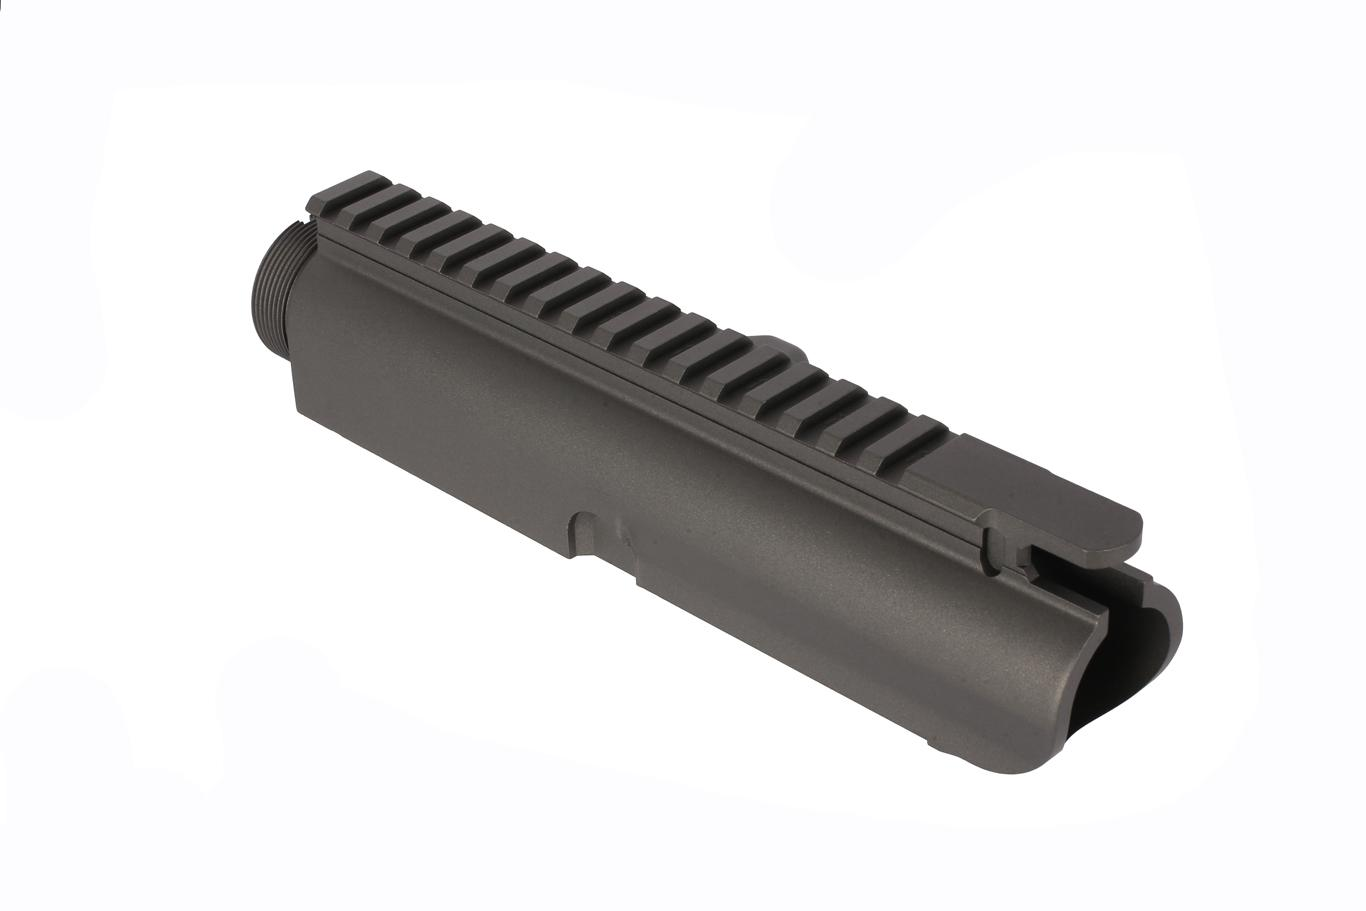 Ghost Firearms GF-10 Stripped Upper Receiver - Tungsten Gray